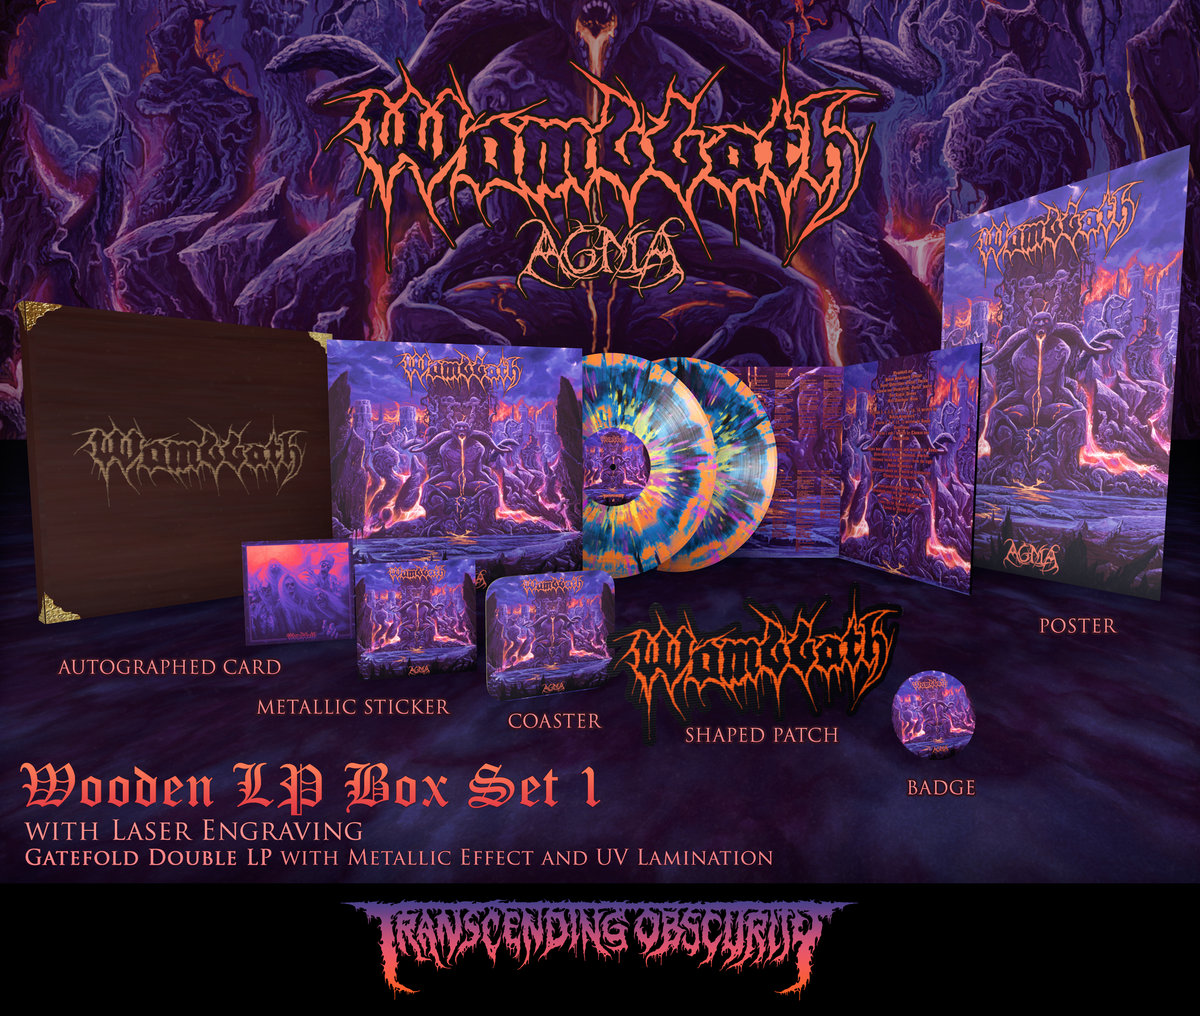 WOMBBATH - Agma Wooden Double LP Box Set with Engraving (Limited to 25 per variant)